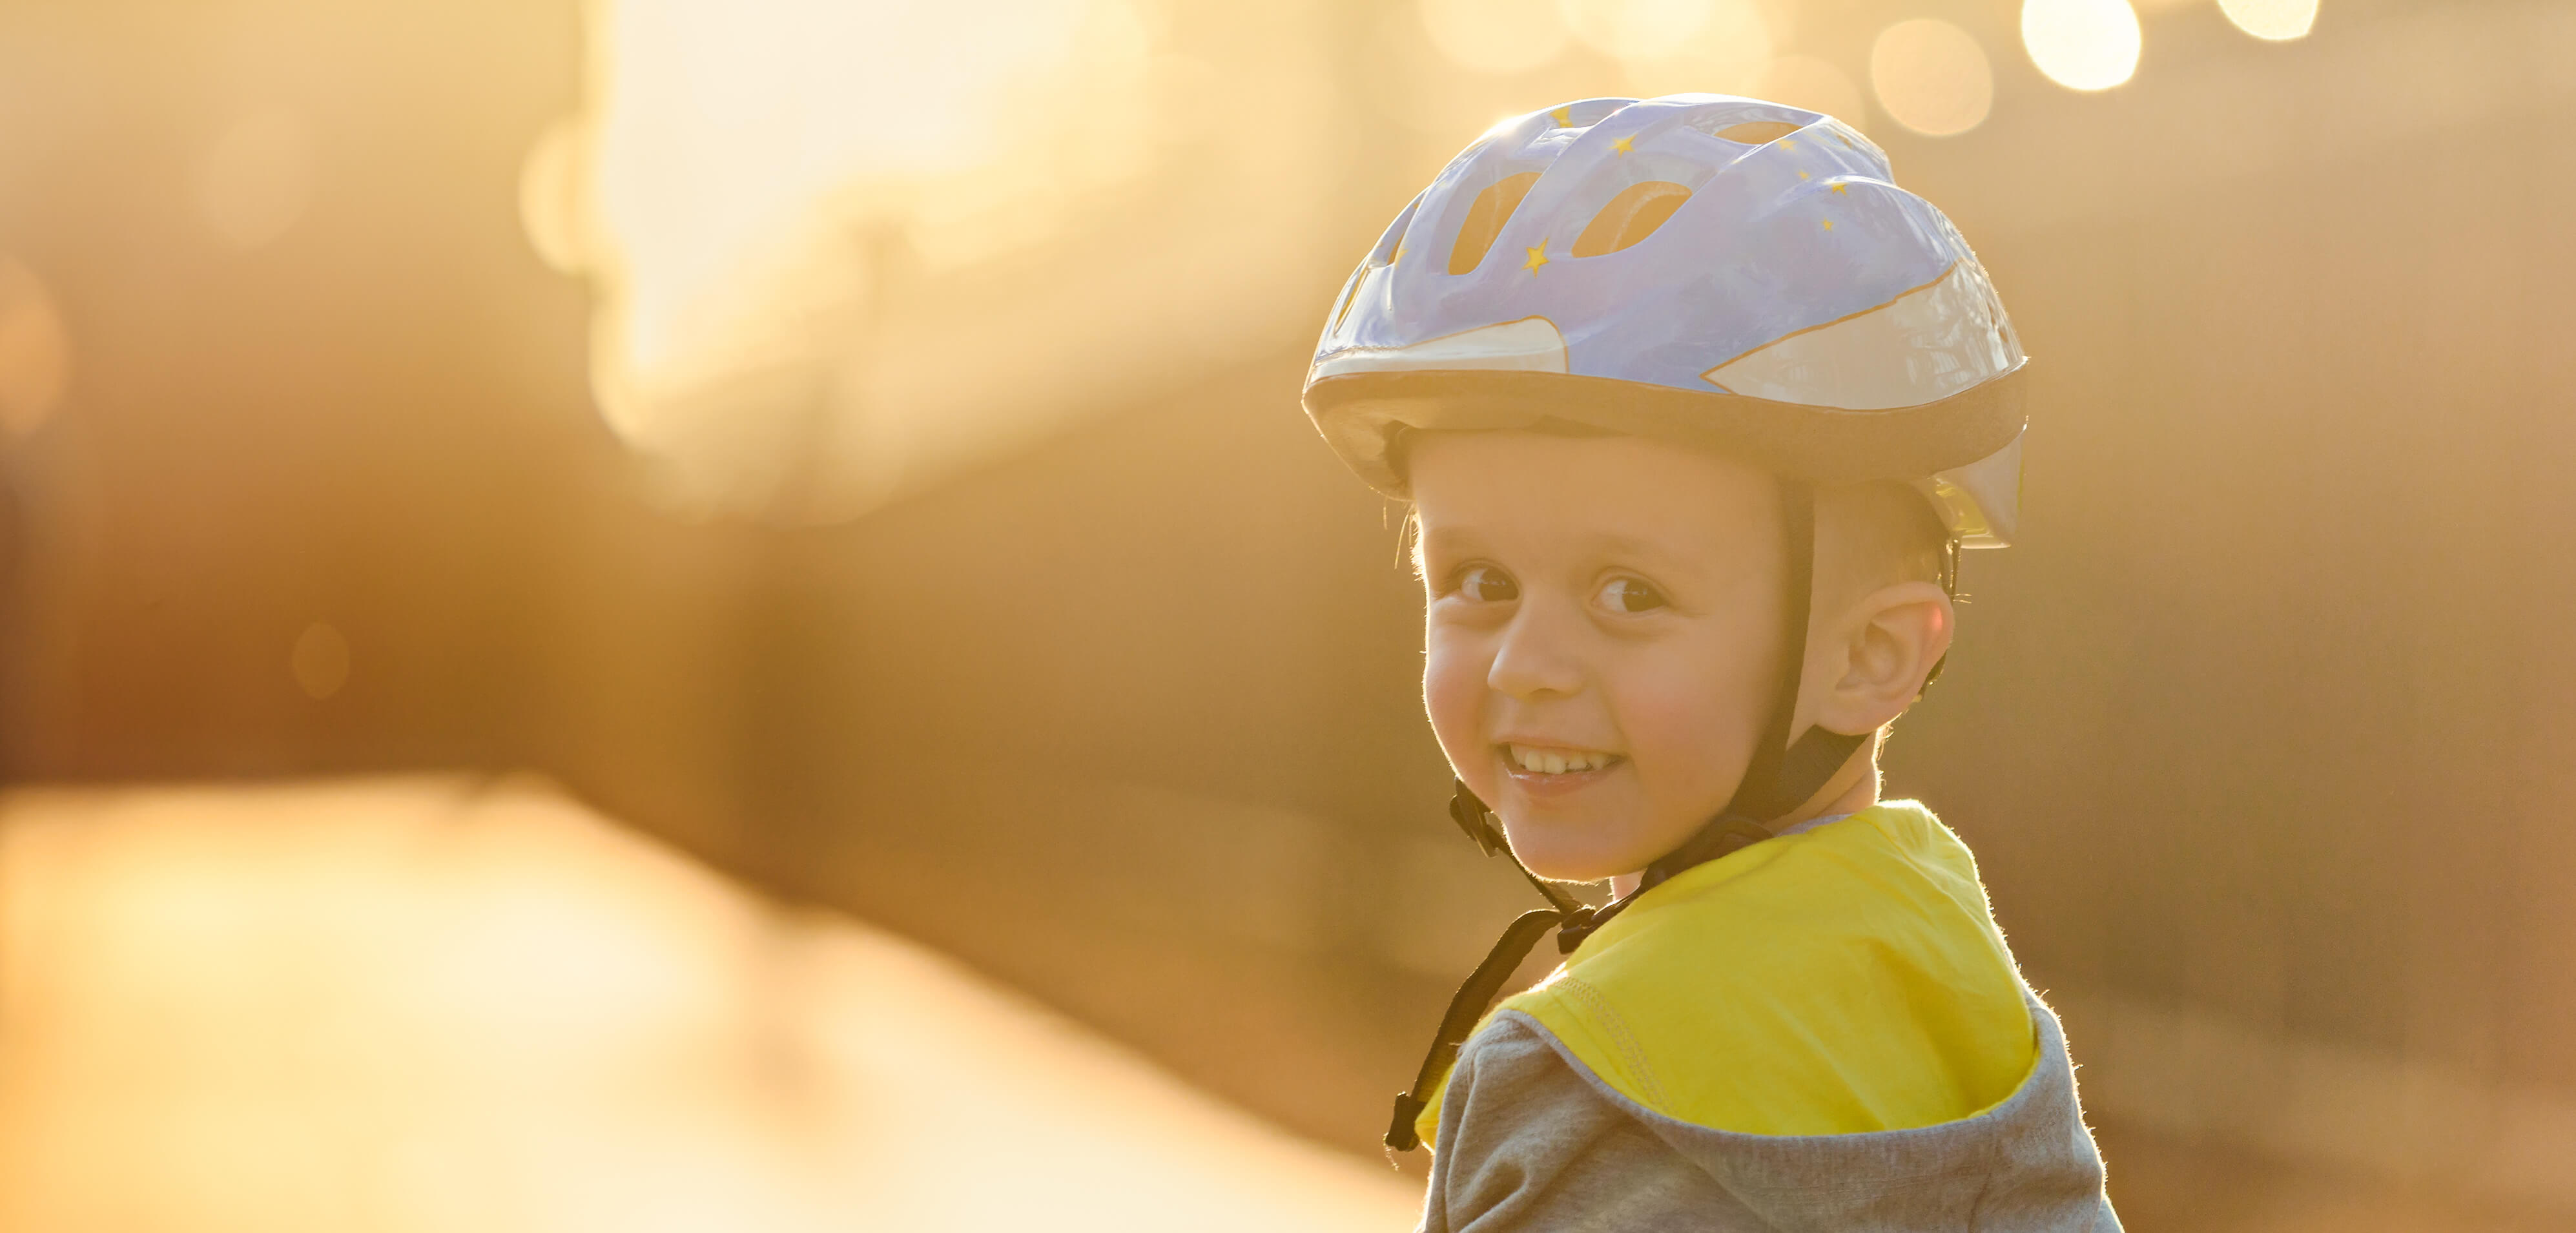 kid wearing helmet and smiling_third avenue